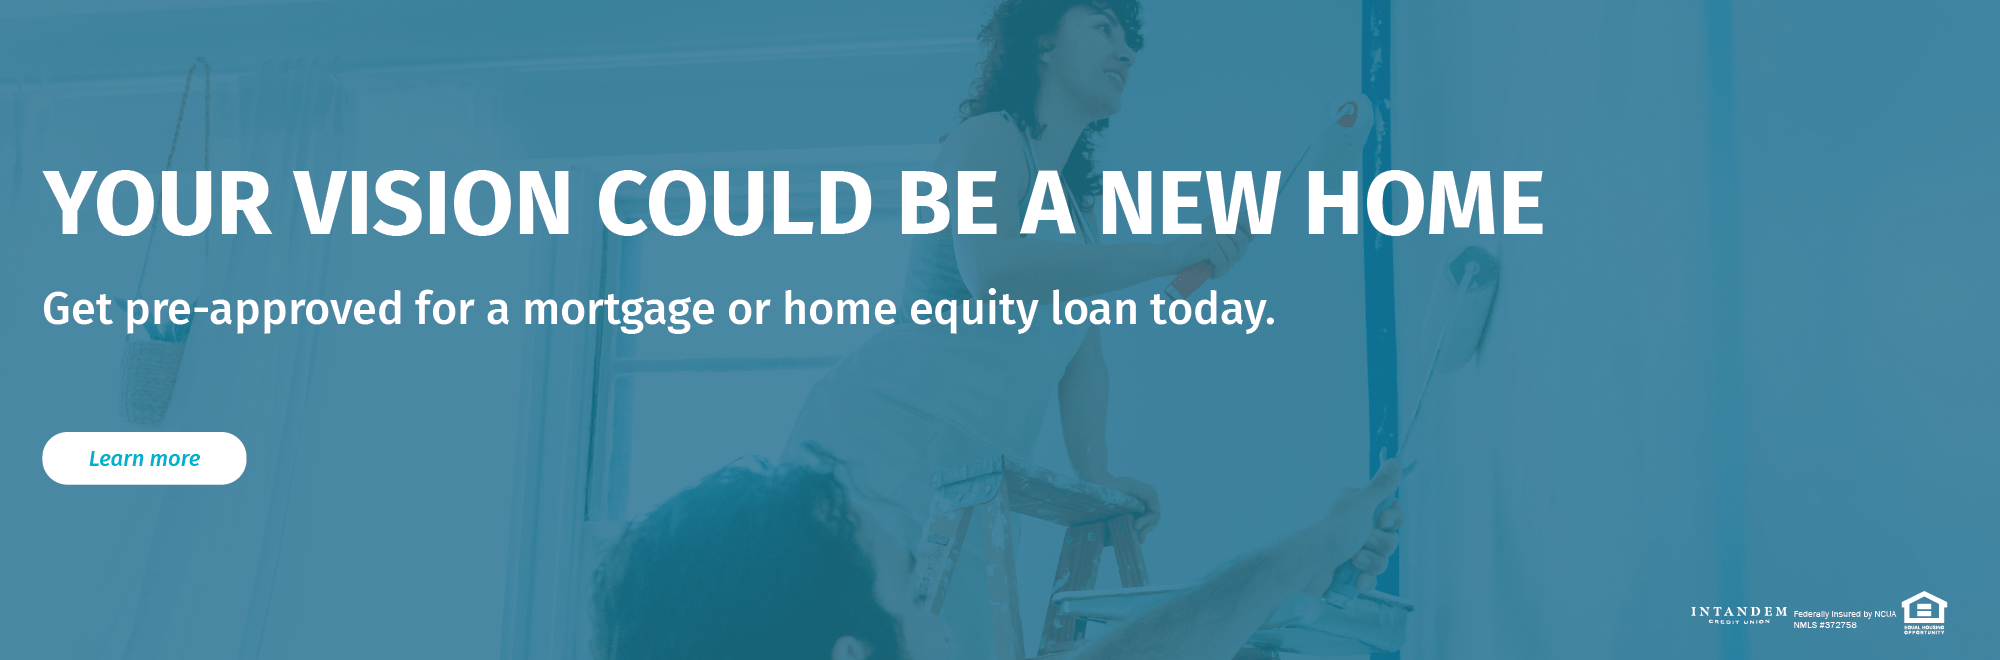 Your vision could be a new home. Get pre-approved for a mortgage or home equity loan today.